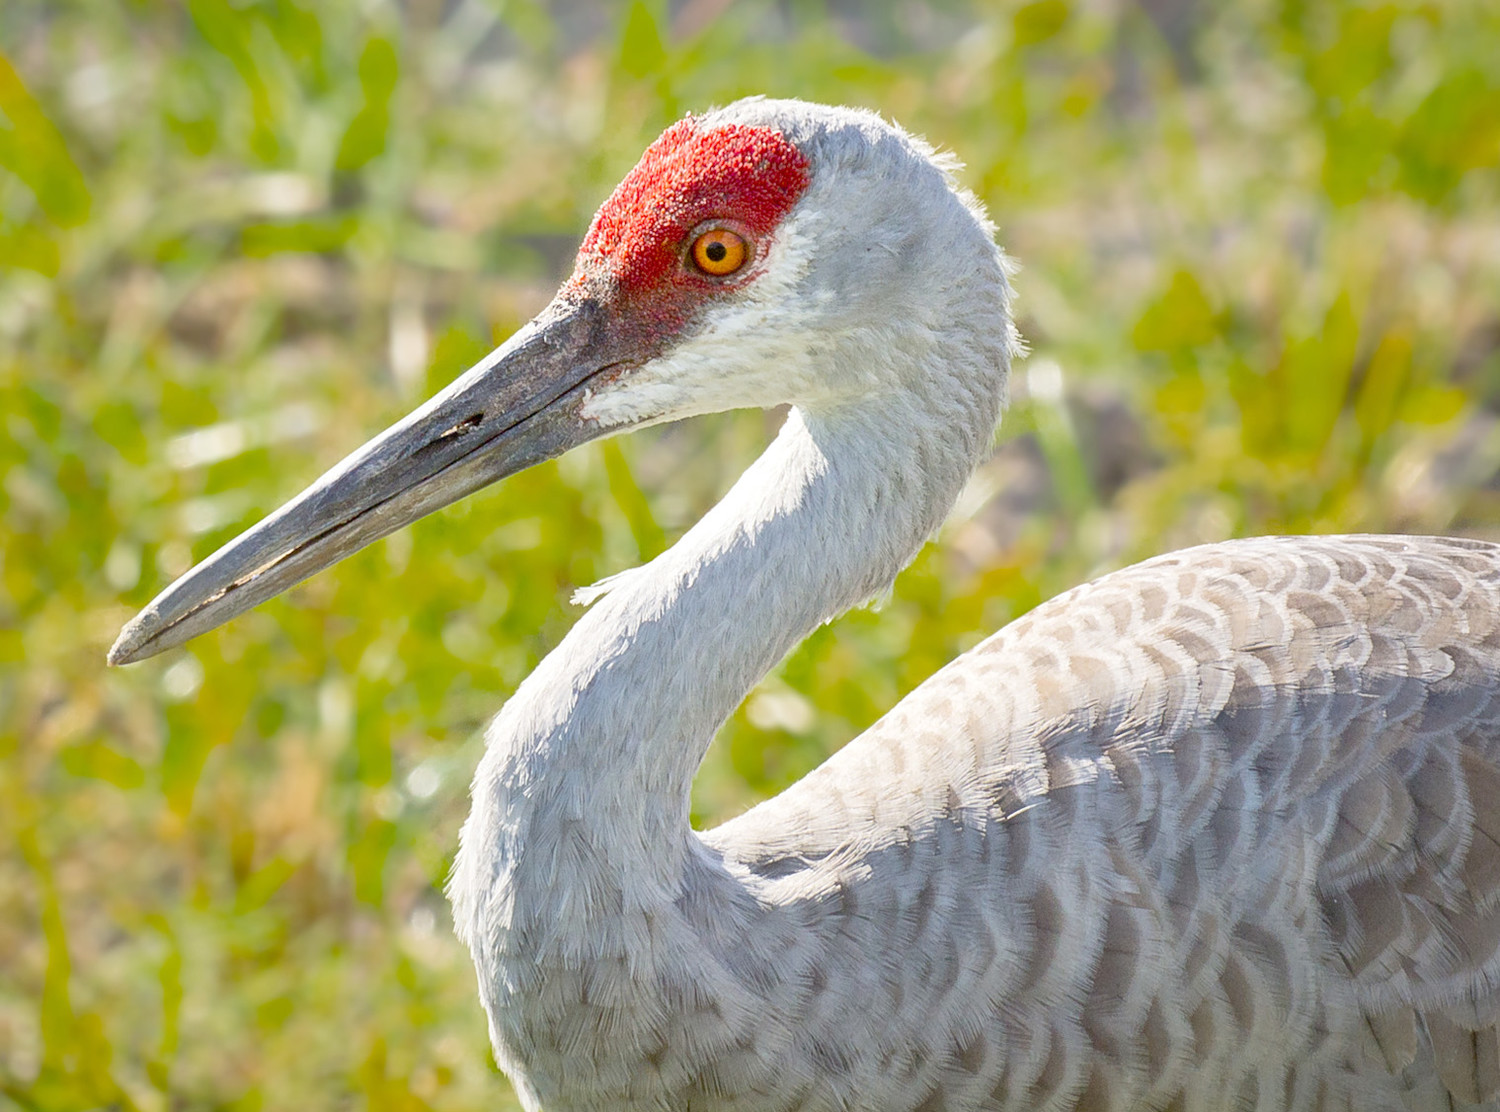 Sandhill cranes can be viewed each winter at the Hiwassee Wildlife Refuge, near Birchwood.